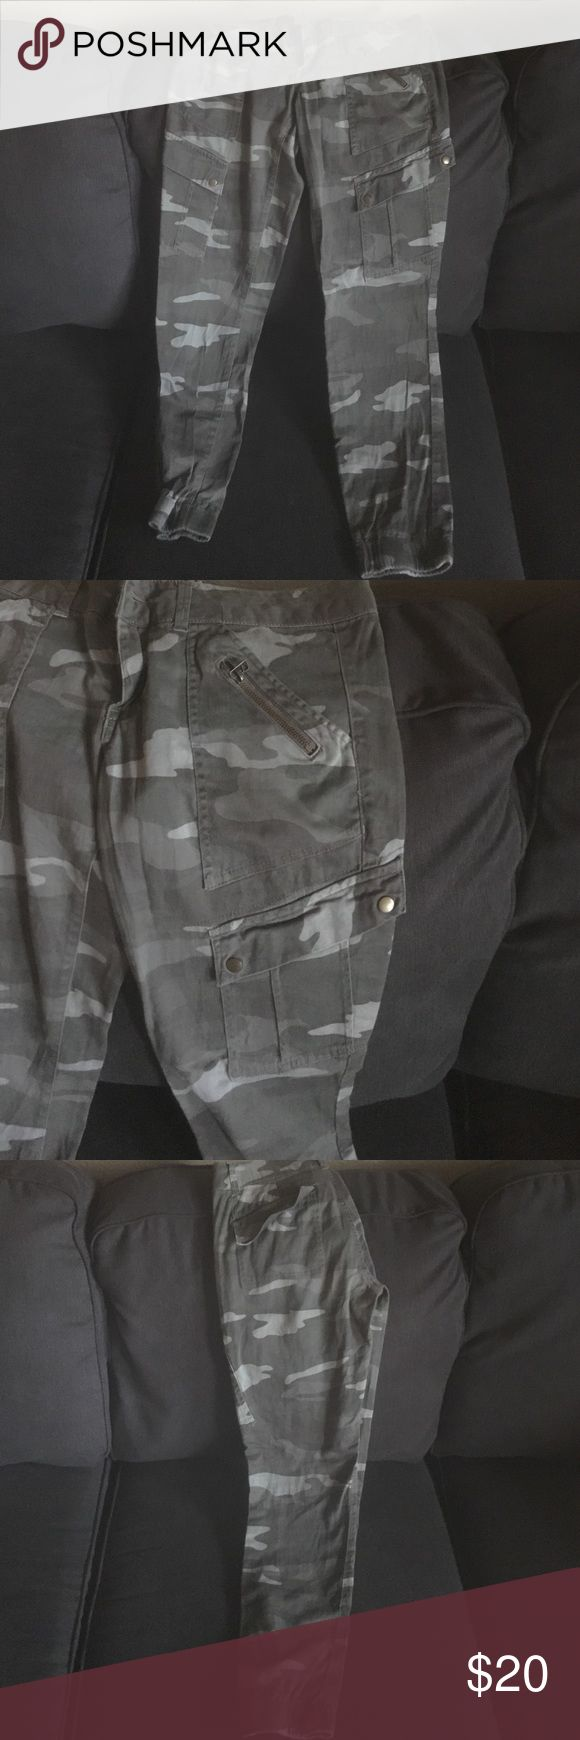 Camo jogger pants Jogger pants (woman pants). Never worn out, only tried on a couple times to wear. Size 9 Jolt Pants